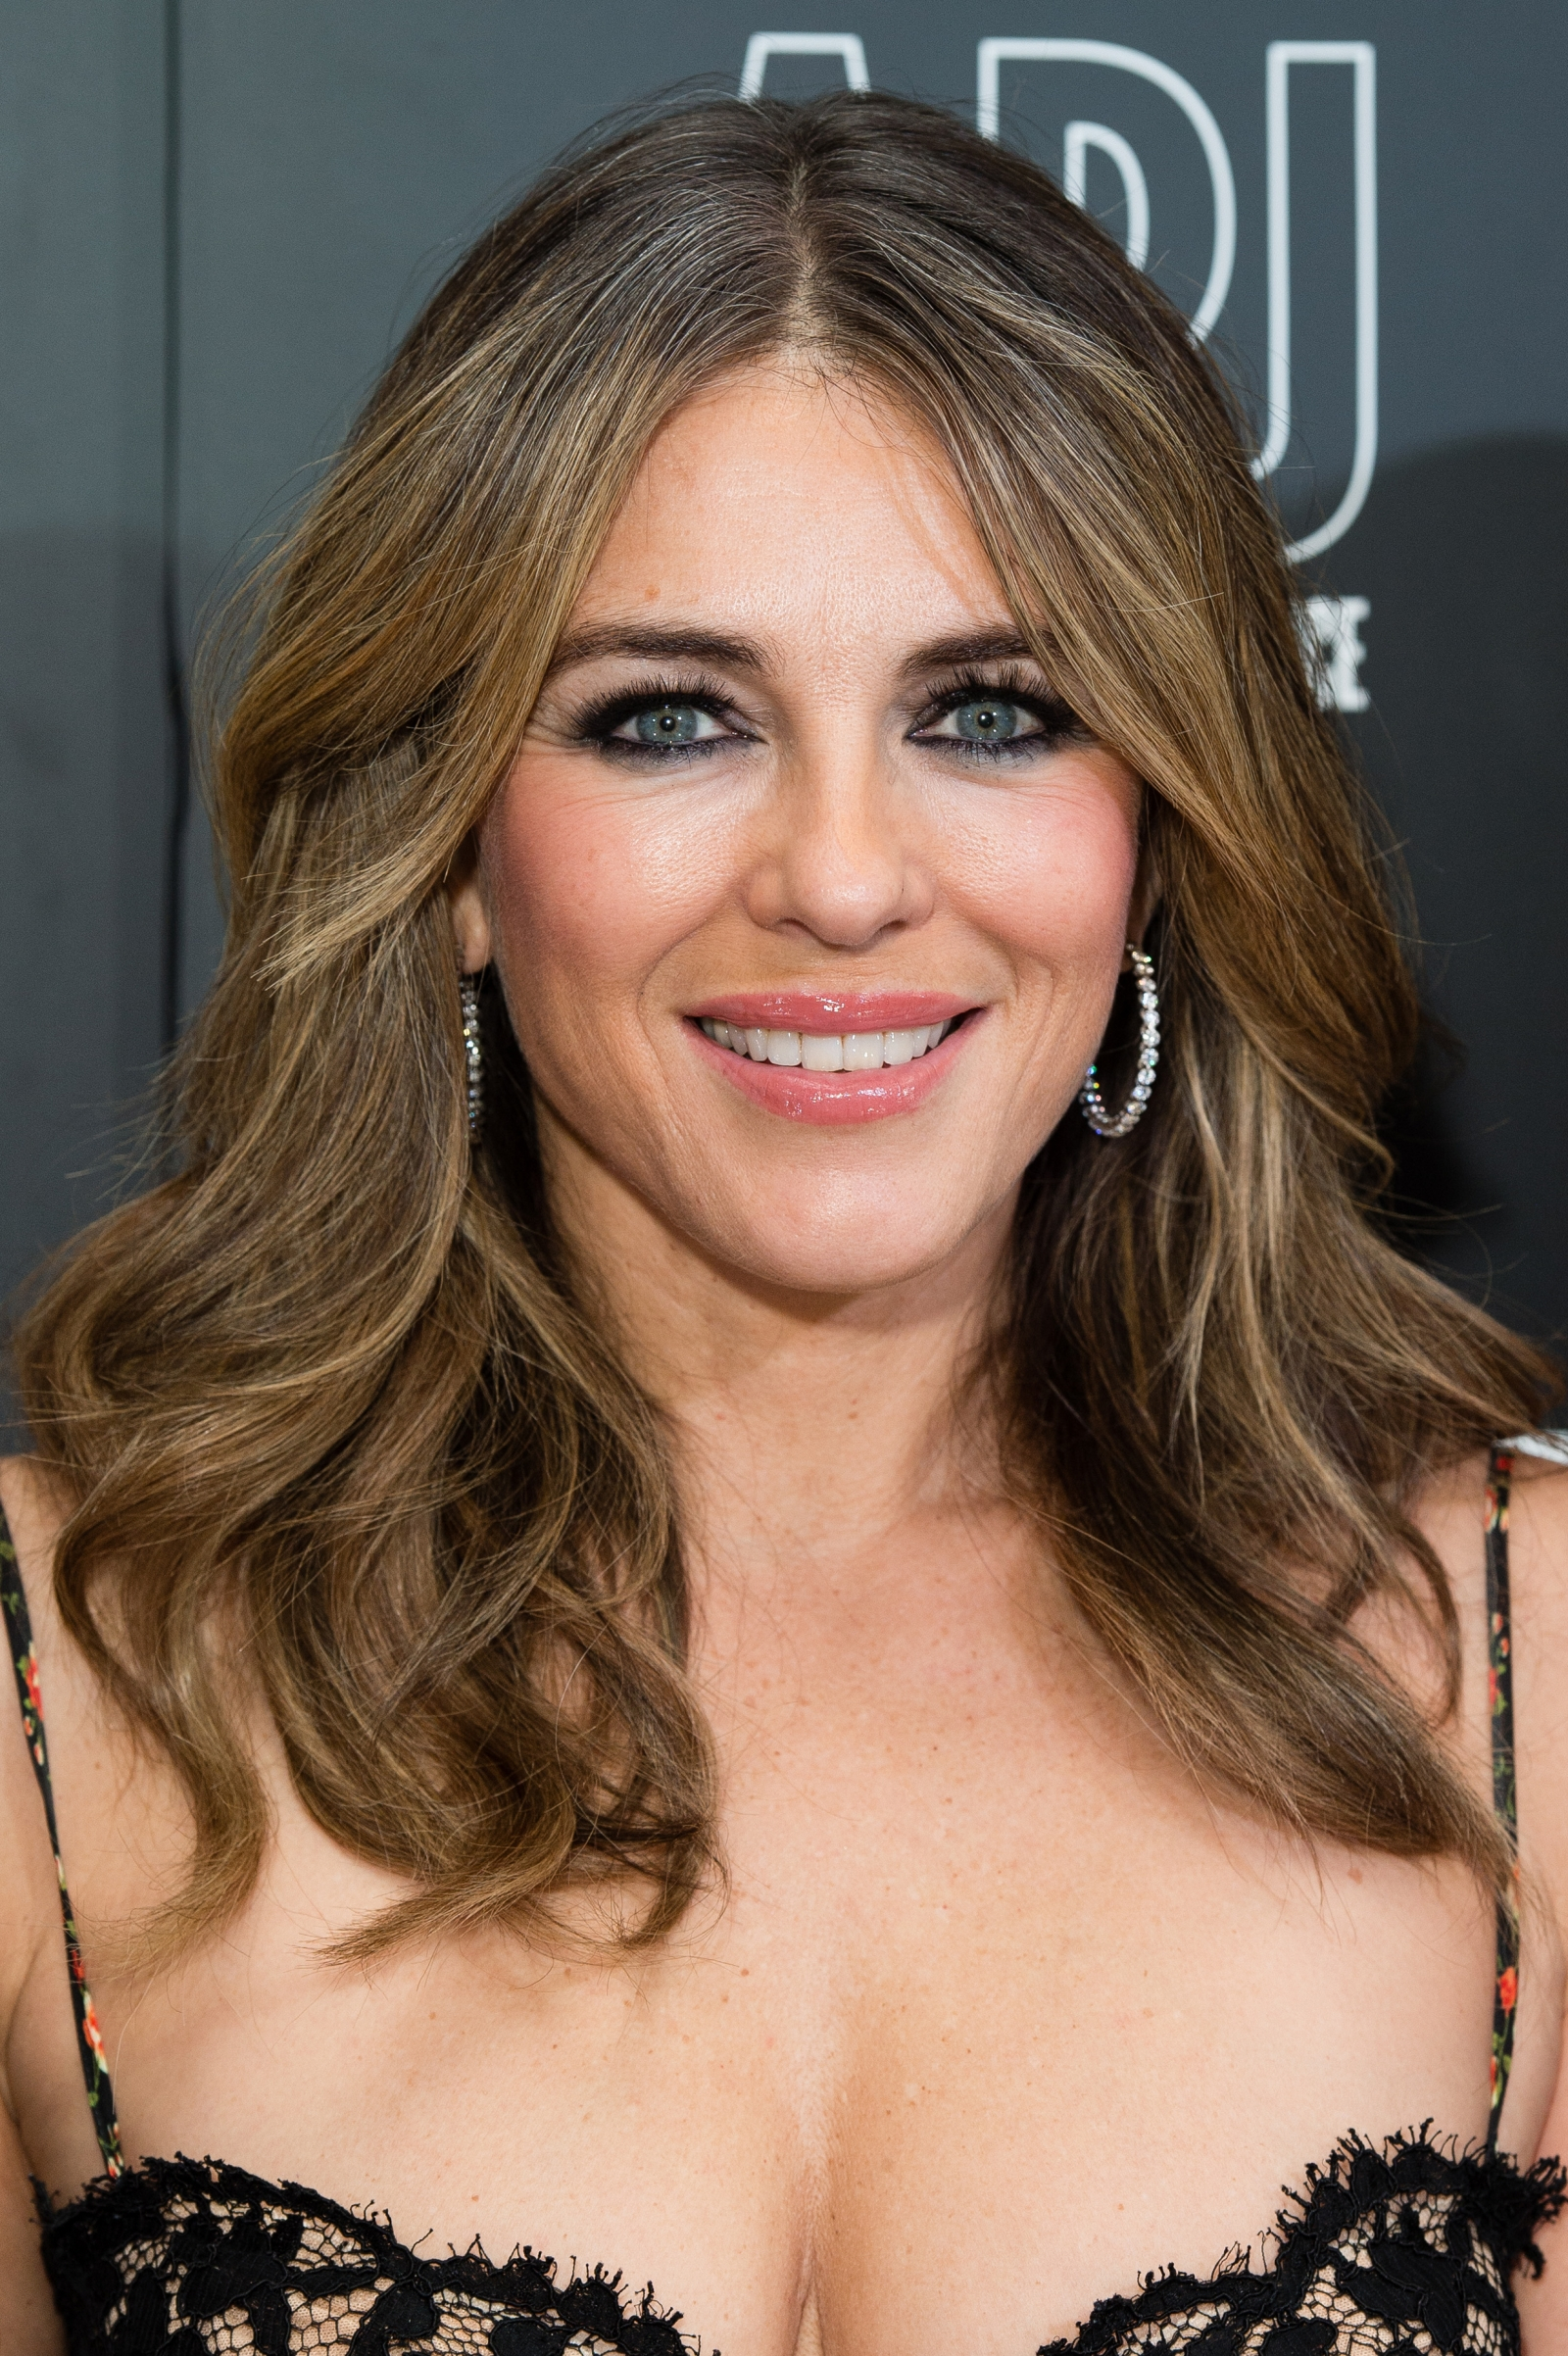 Elizabeth Hurley nude (67 images) Hacked, YouTube, lingerie